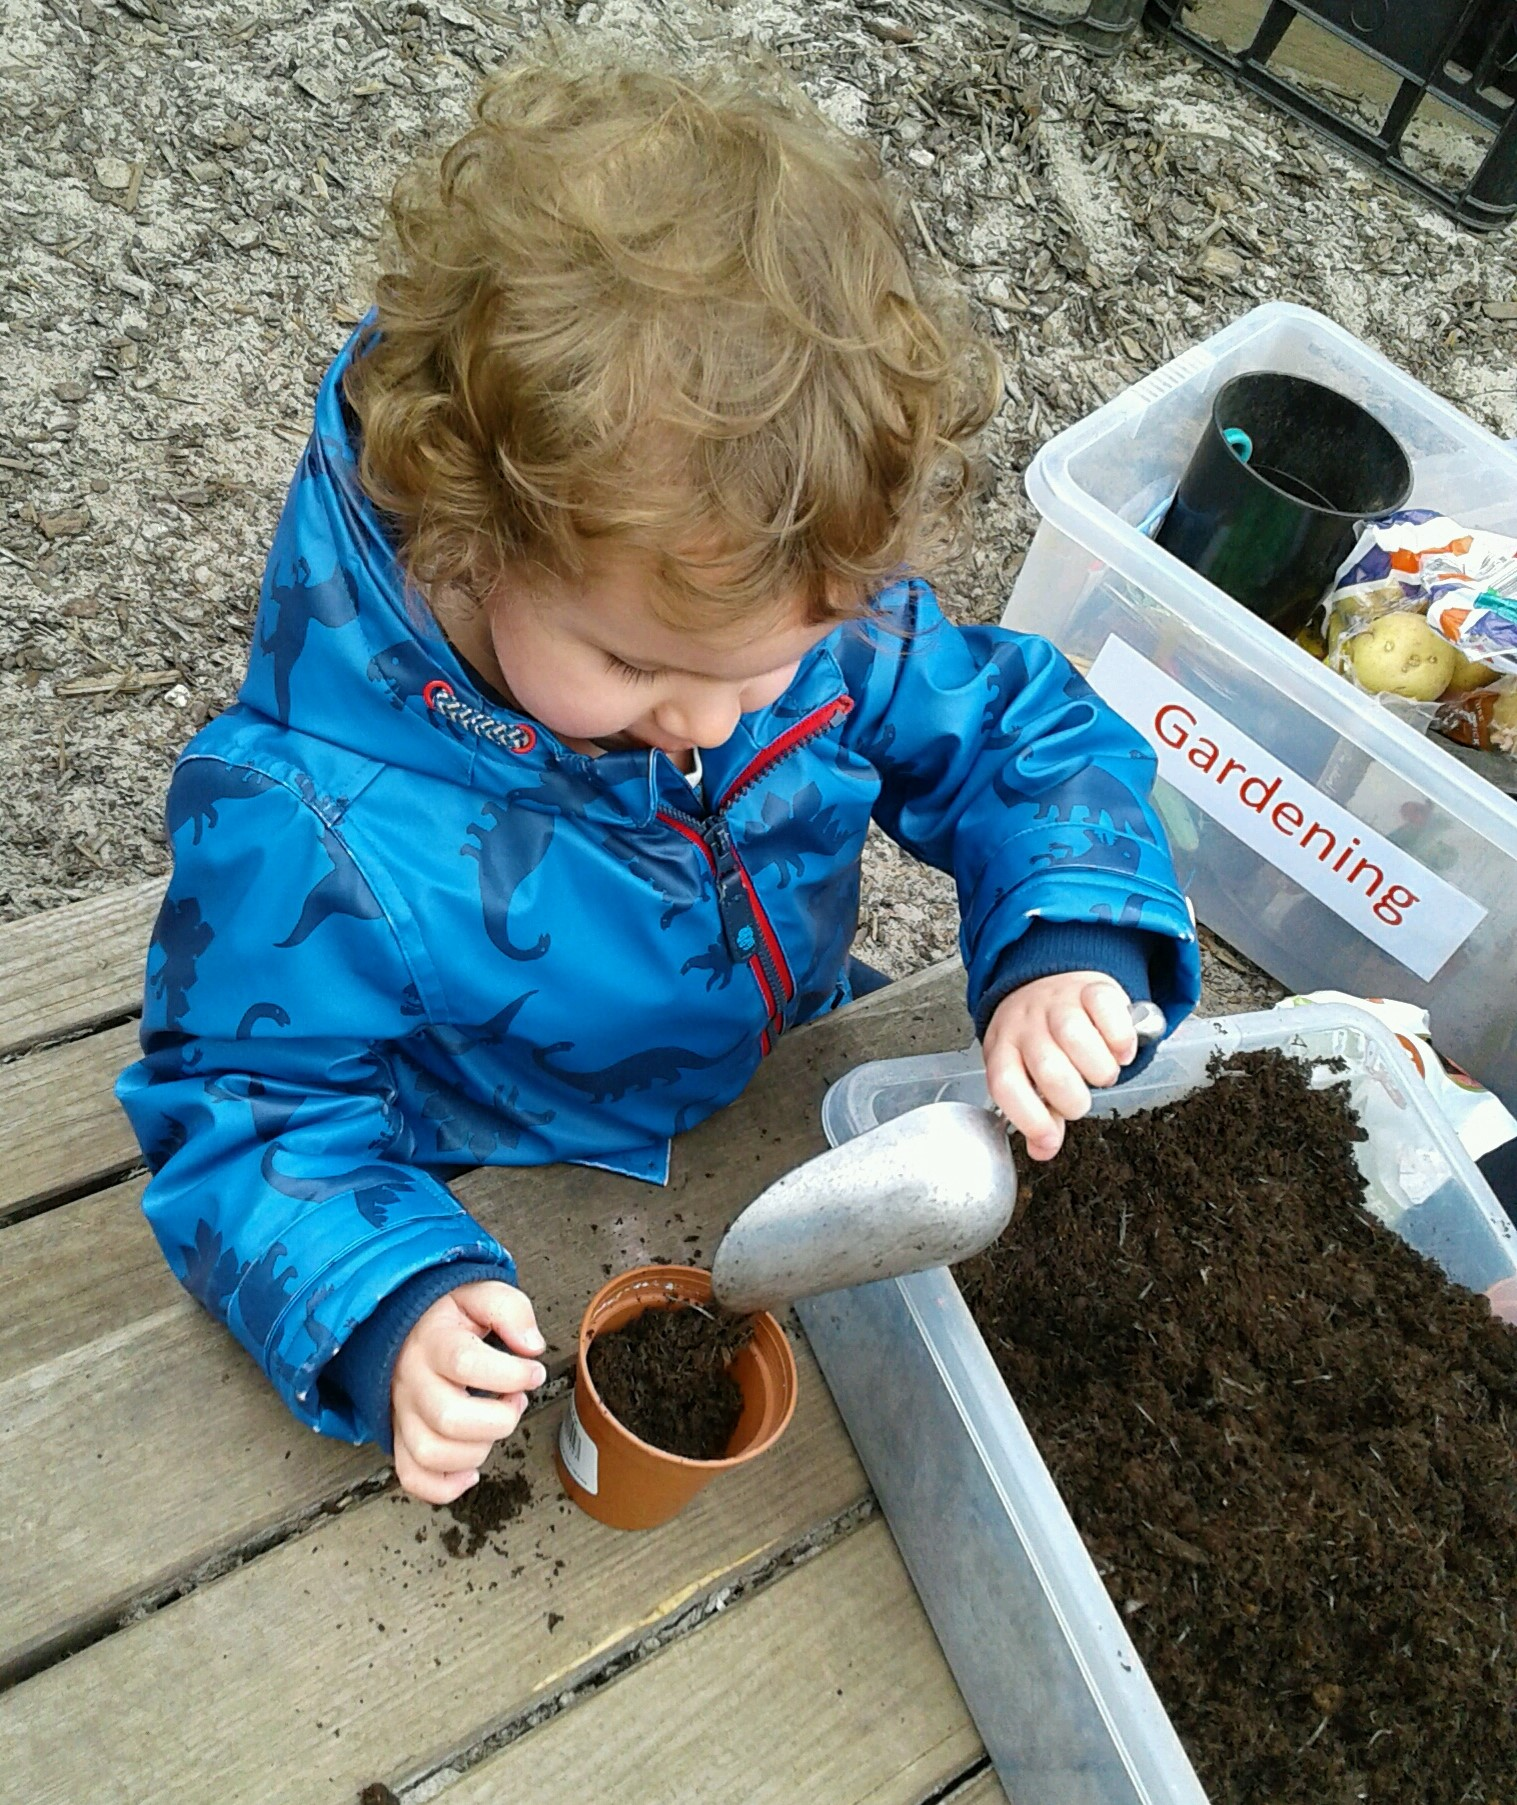 Today we have had lots of fun planting seeds outdoors.